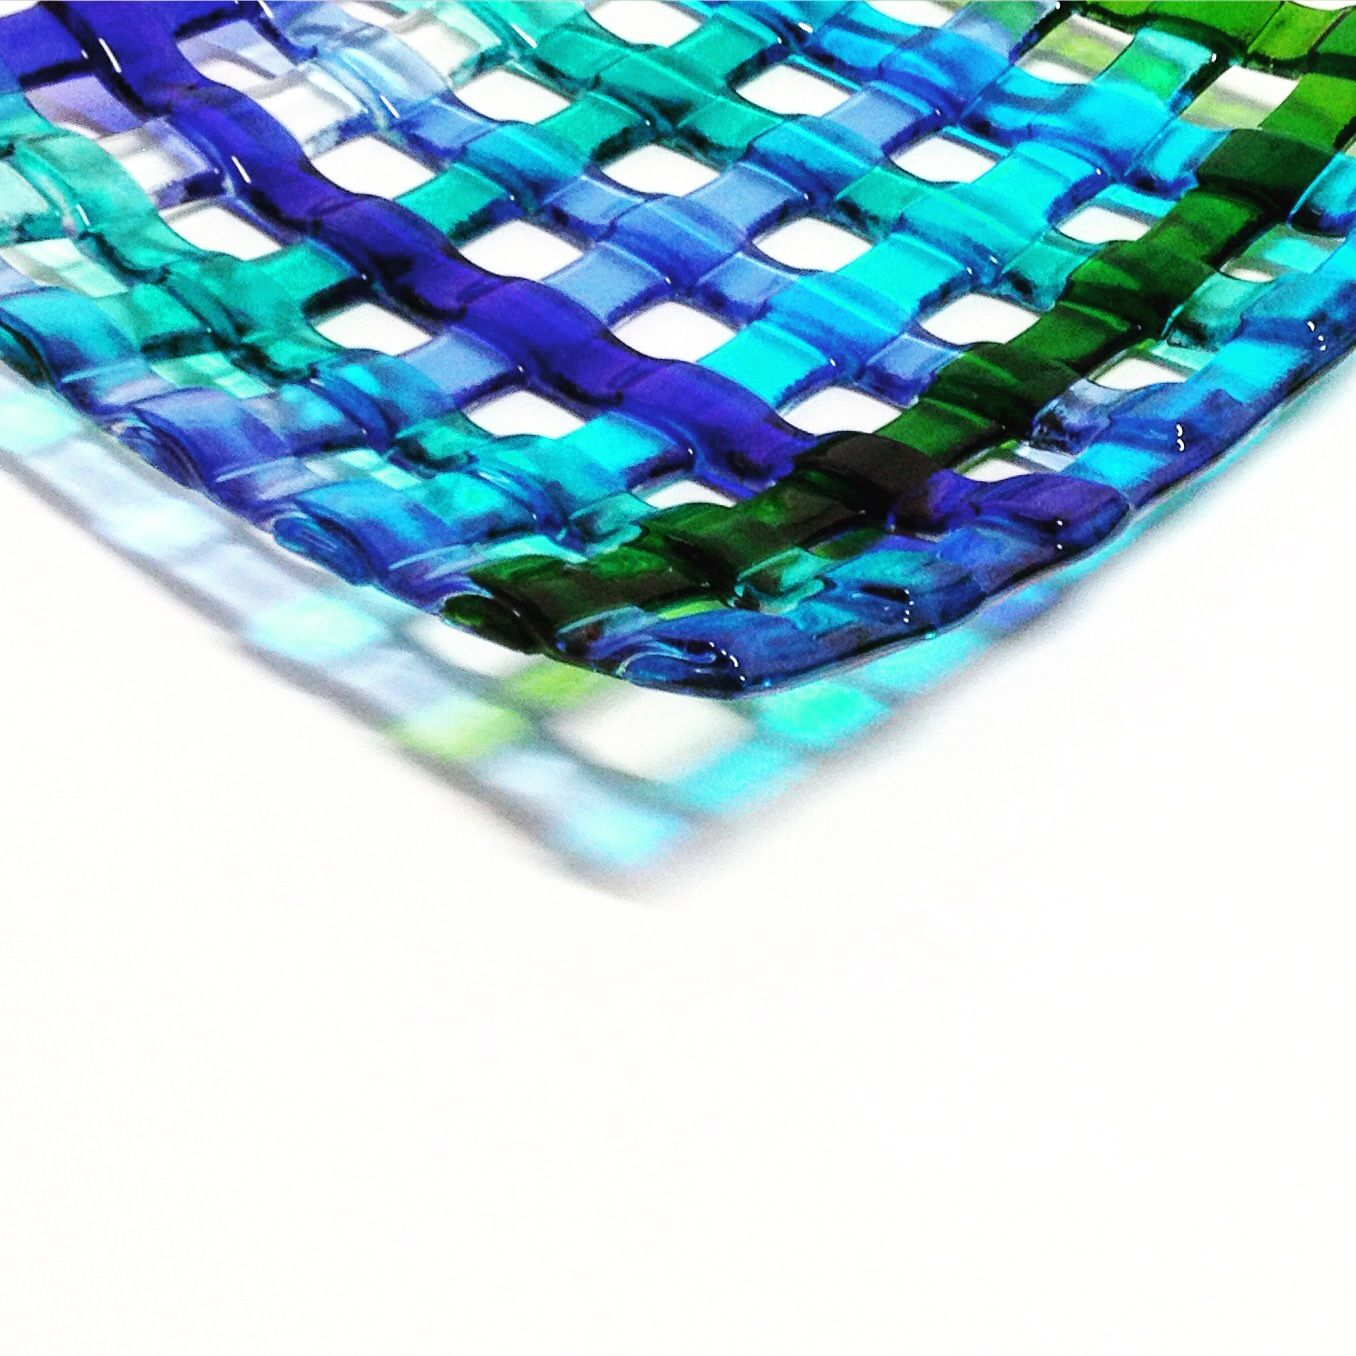 Pin by leonard hill on slumping and fusing glass glass